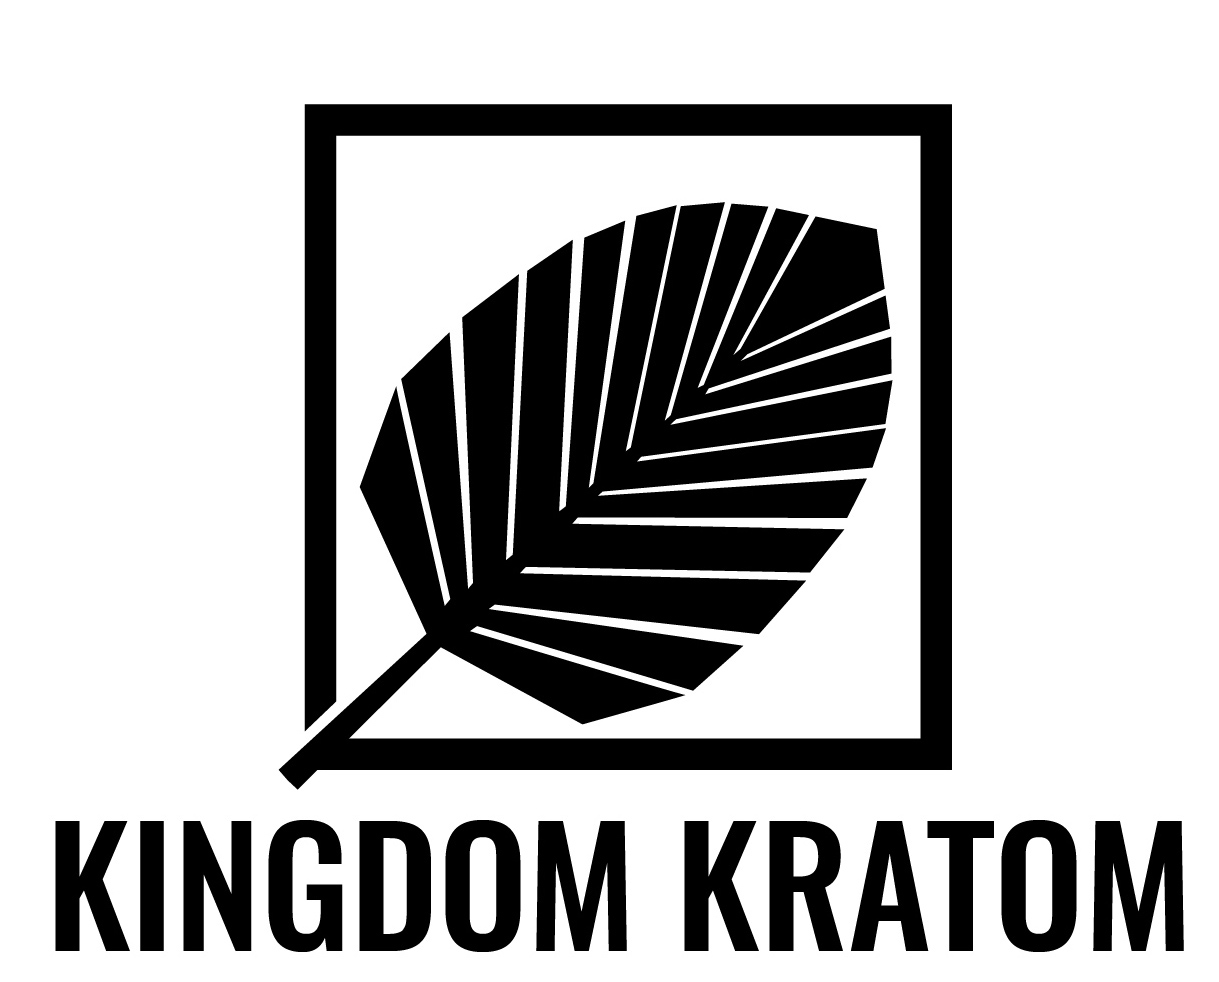 Kingdom Kratom